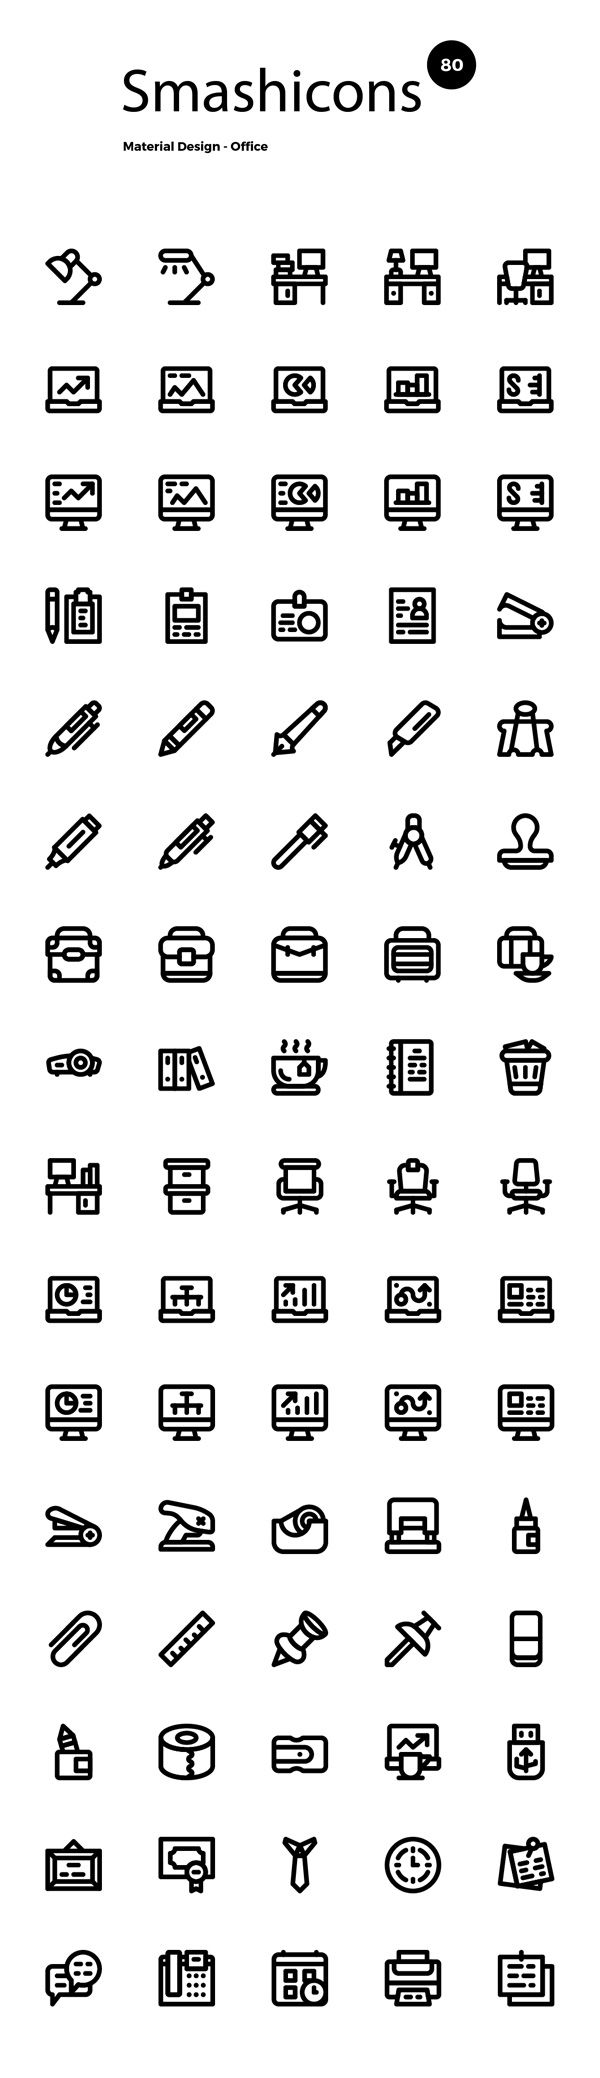 Today we have for you another great set of 80 free office icons in a simple outline style that would make a nice...